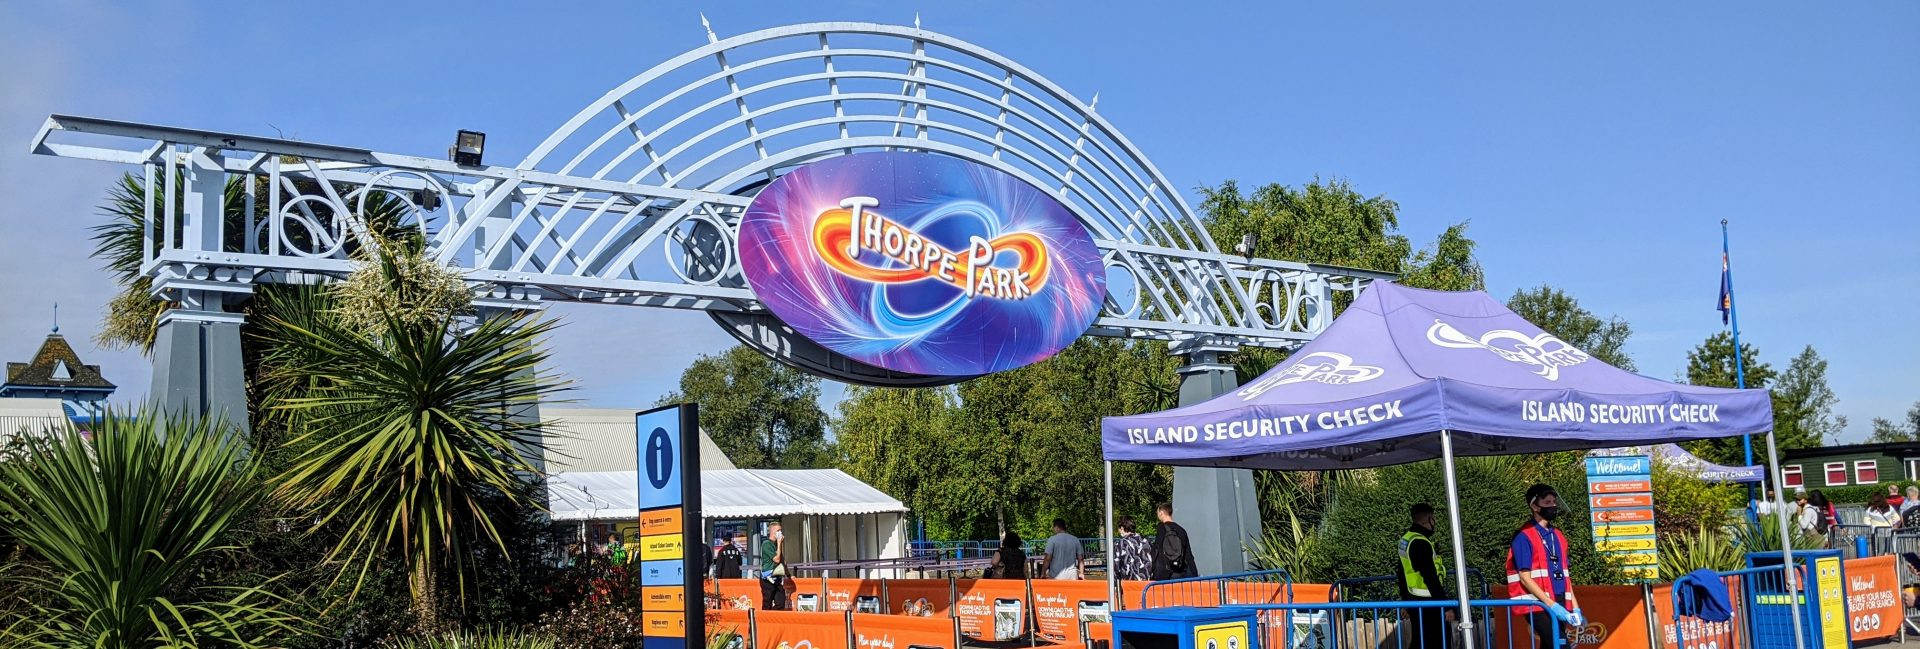 Entrance to Thorpe park